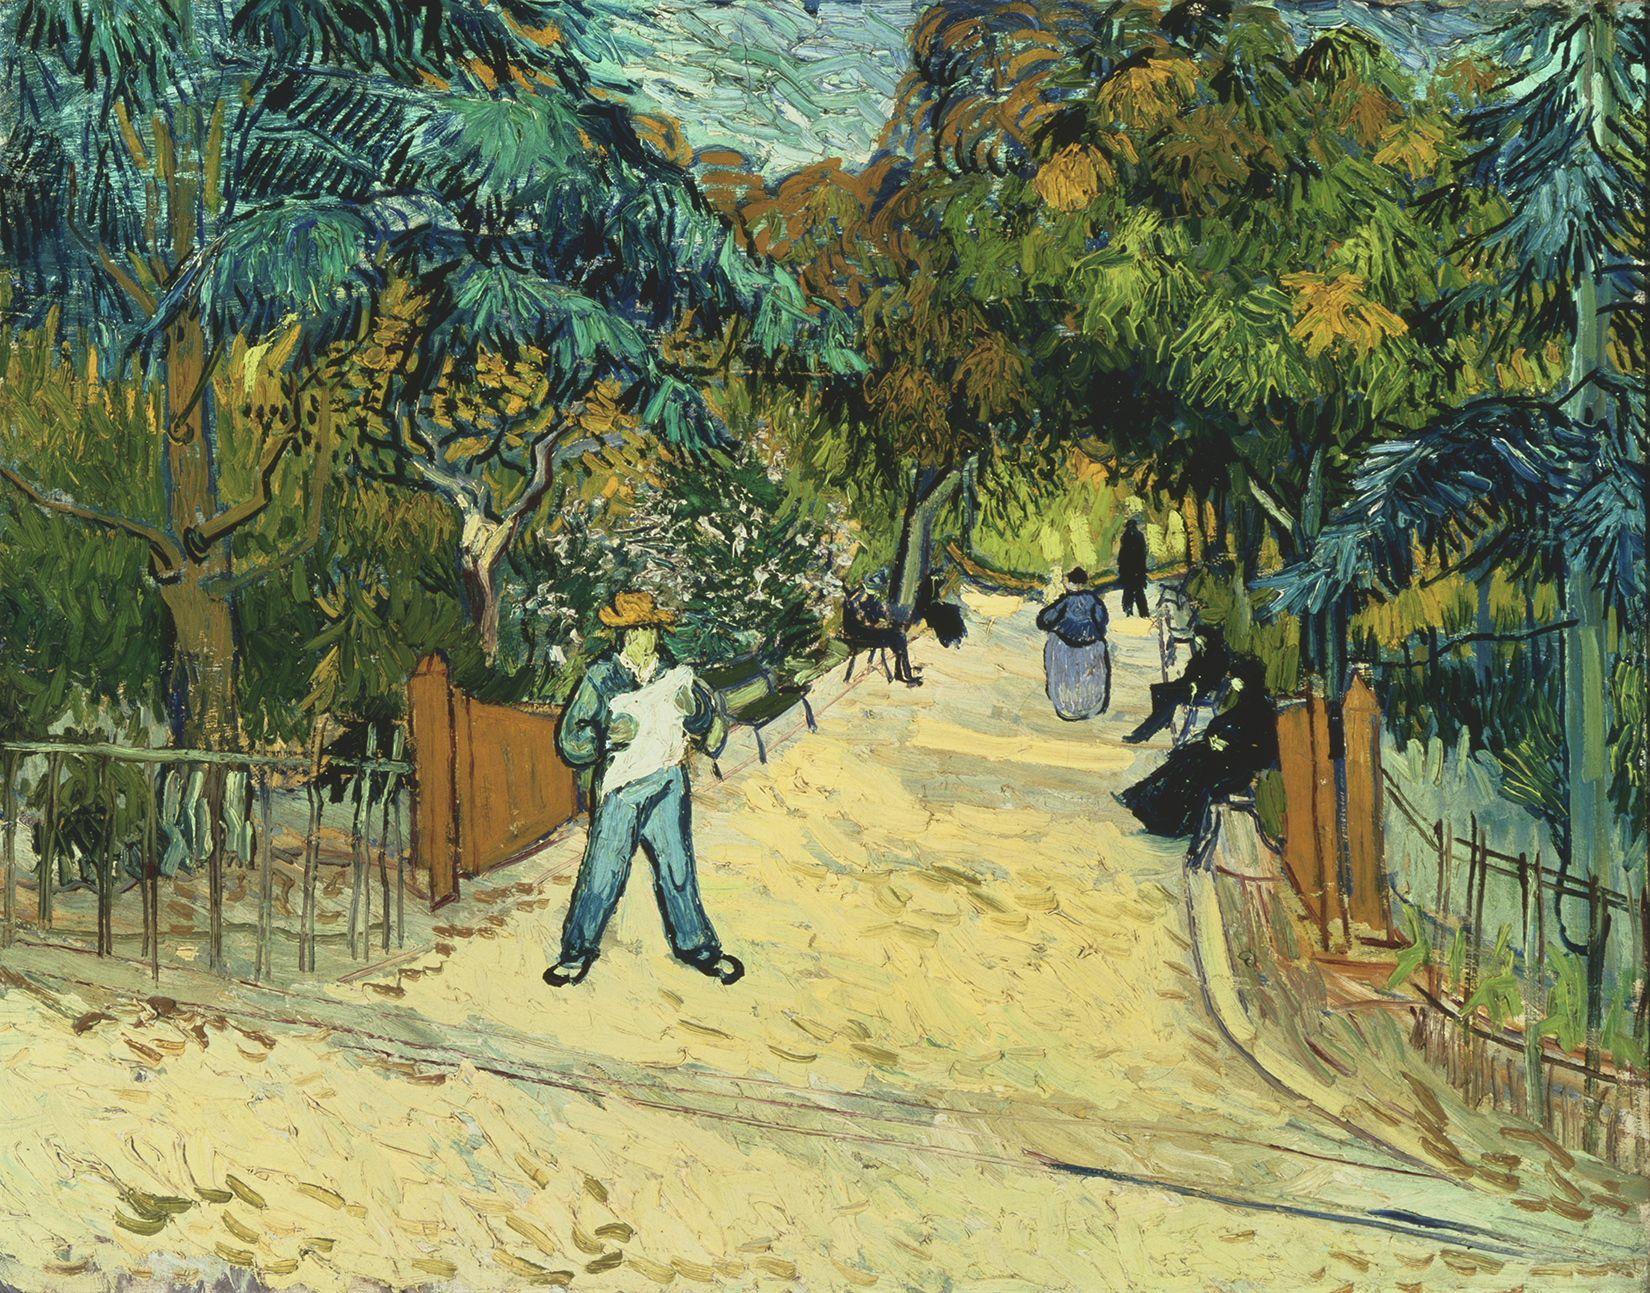 ModVis 017_Van Gogh_Entrance to the Public Gardens crop.jpg